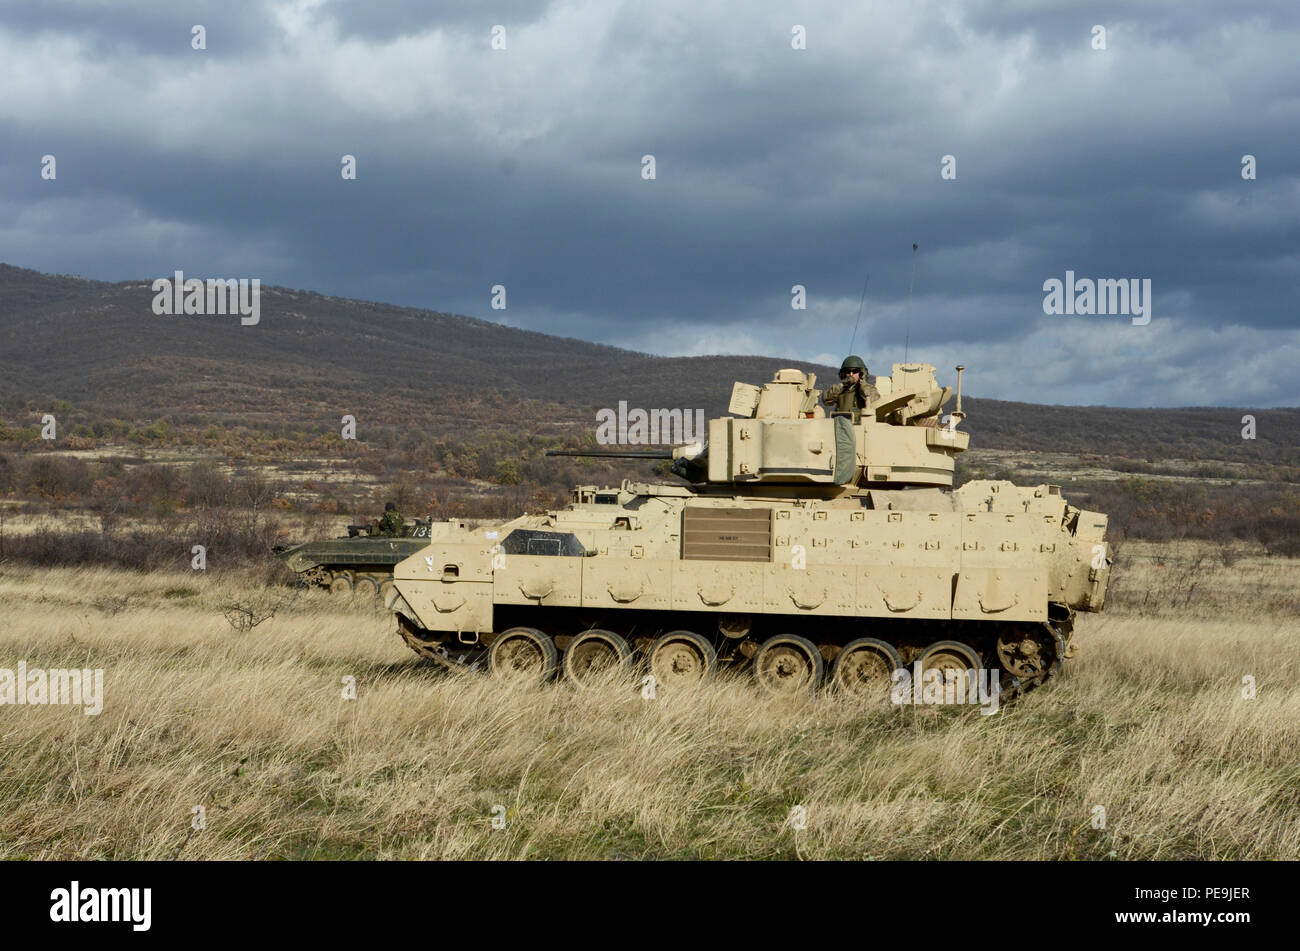 Bulgarian and U.S. soldiers make offensive movement on the enemy with a Boyevaya Mashina Pekhoty 1 (BMP -1P) and a Bradley Fighting Vehicle during Exercise Peace Sentinel at Novo Selo Training Center, Bulgaria, Nov. 22, 2015. (U.S. Army photo by Staff Sgt. Steven M. Colvin/Released) - Stock Image